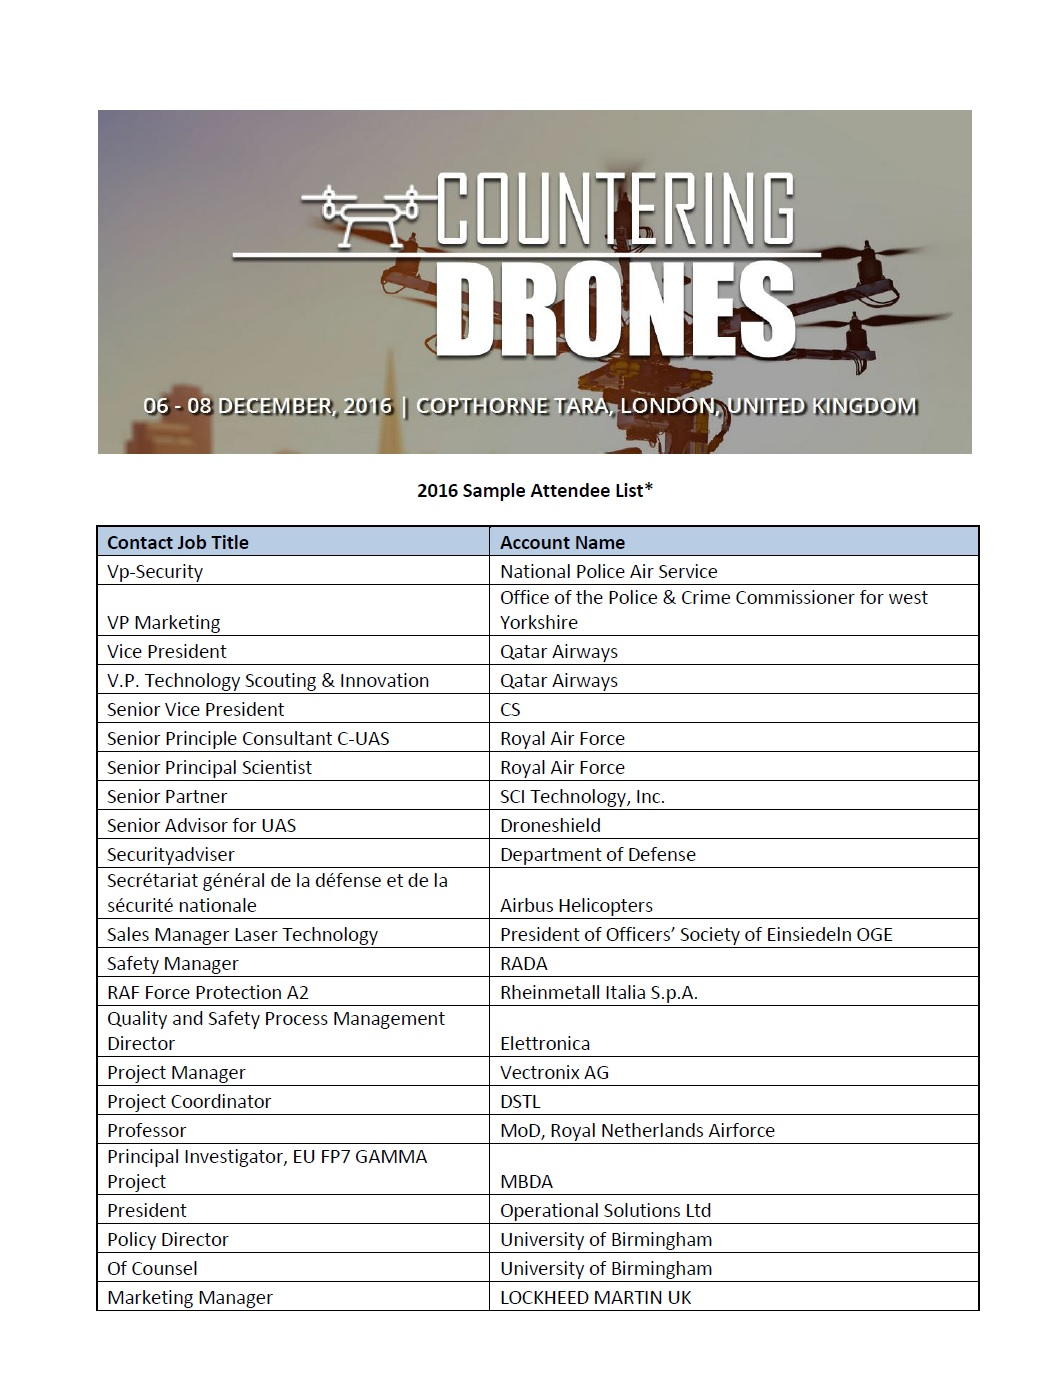 Countering Drones Attendee List 2016